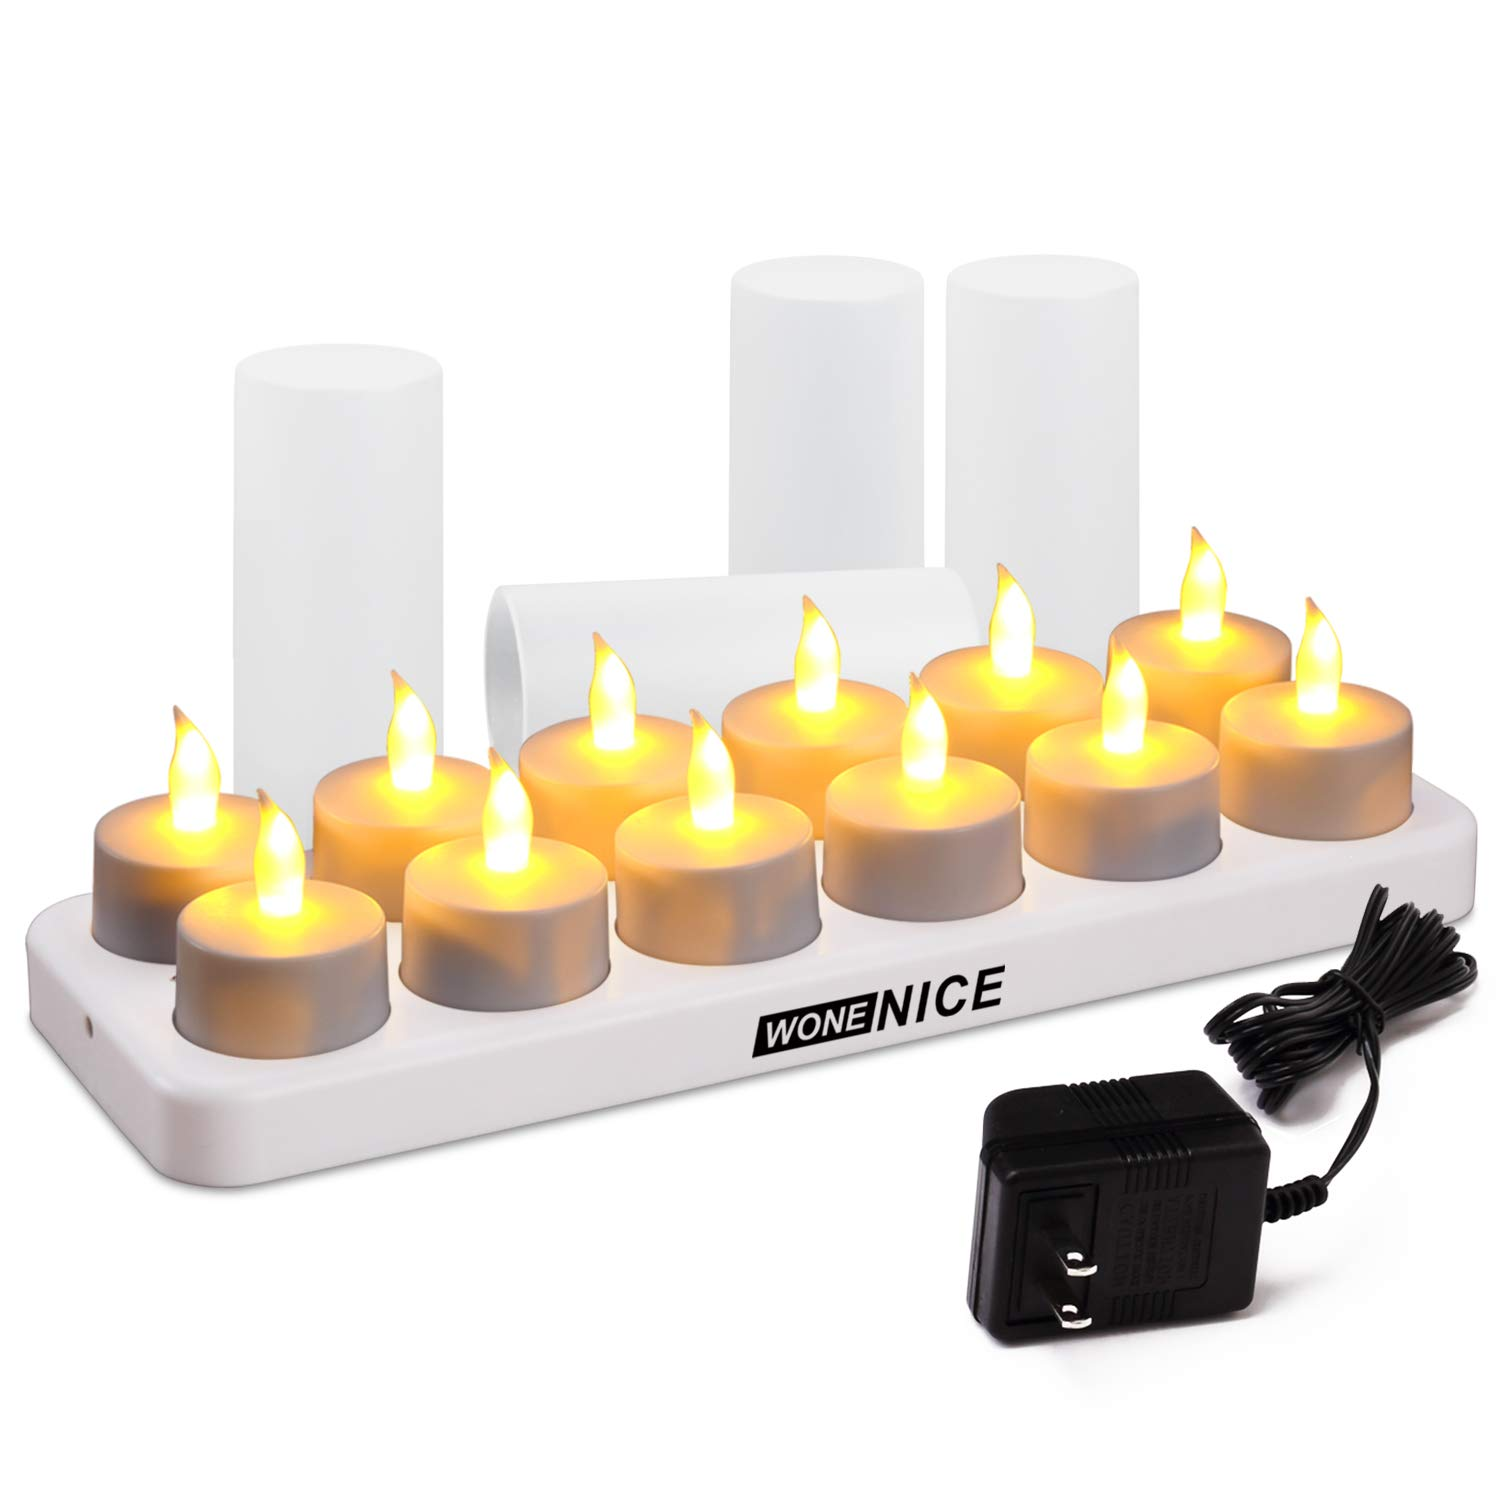 WoneNice Rechargeable Tea Light Flickering Tealight Candles With Holders, Decorationa for Parties, Events, Weddings- (No Batteries Necessary)- White Base (Set of 12) AX-AY-ABHI-58975